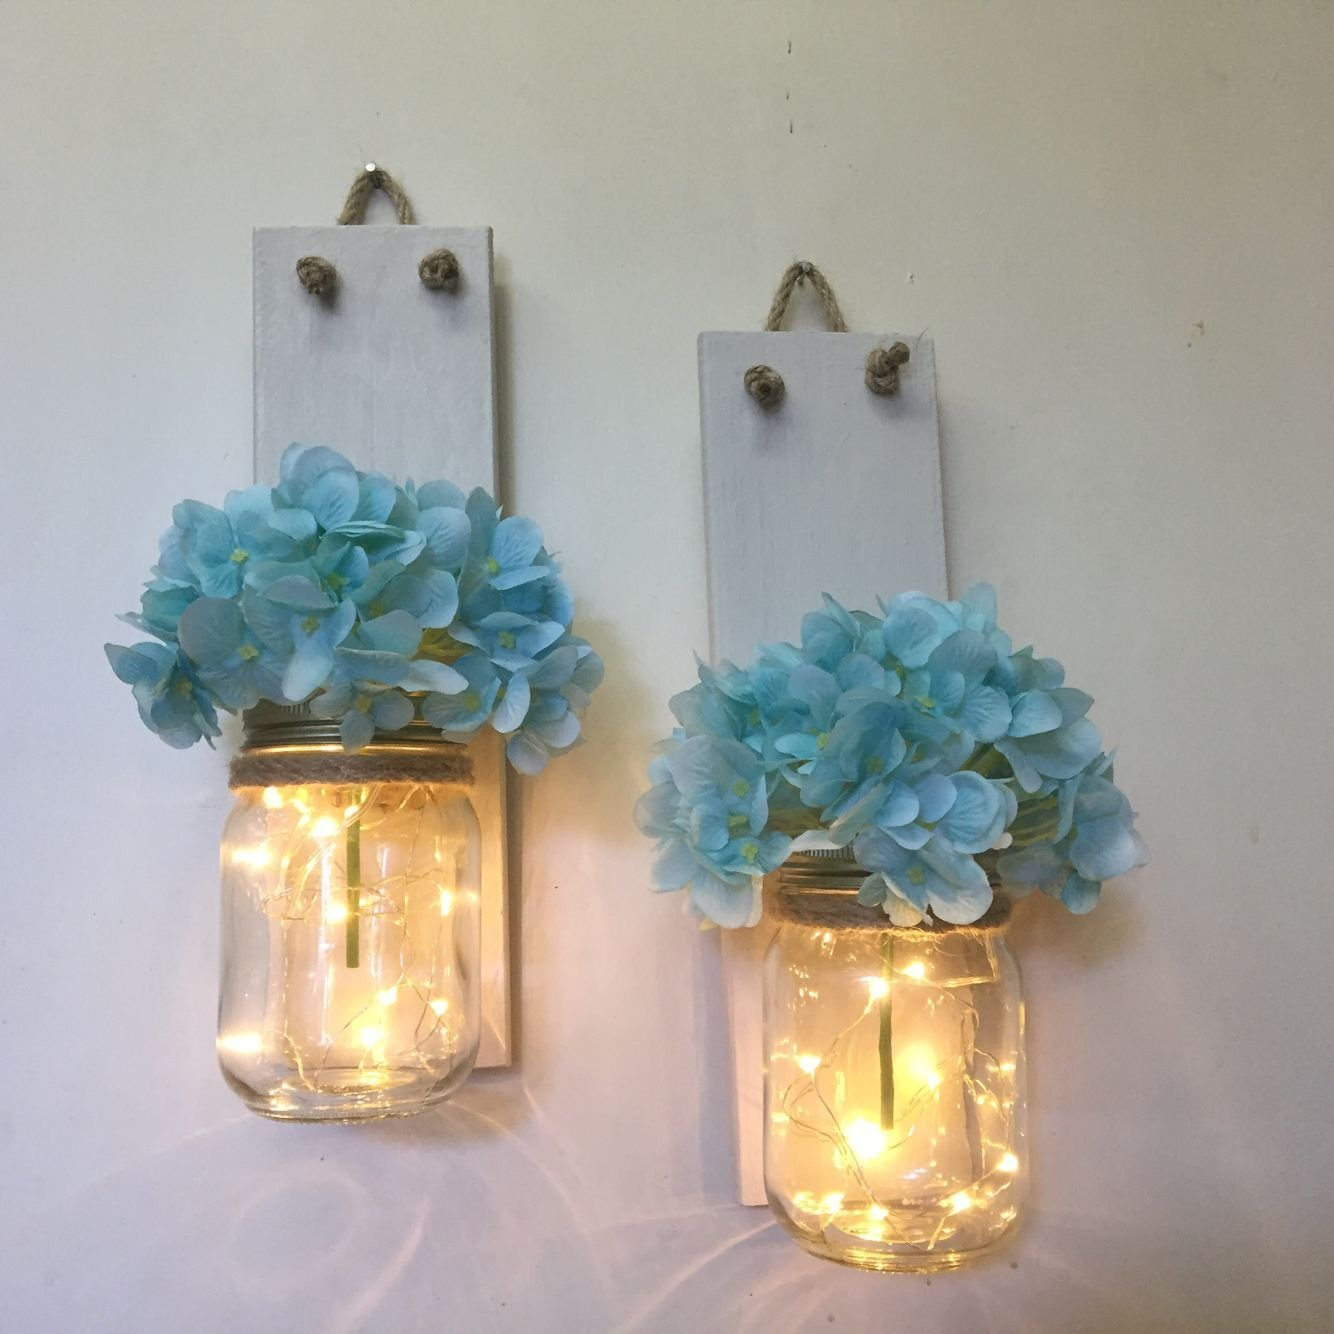 Lighted Mason Jar Sconces, Set of 2 Hanging Sconces White Wood with Lights, Mason Jar Decor, Rustic Home Decor, Sconces with Hydrangeas